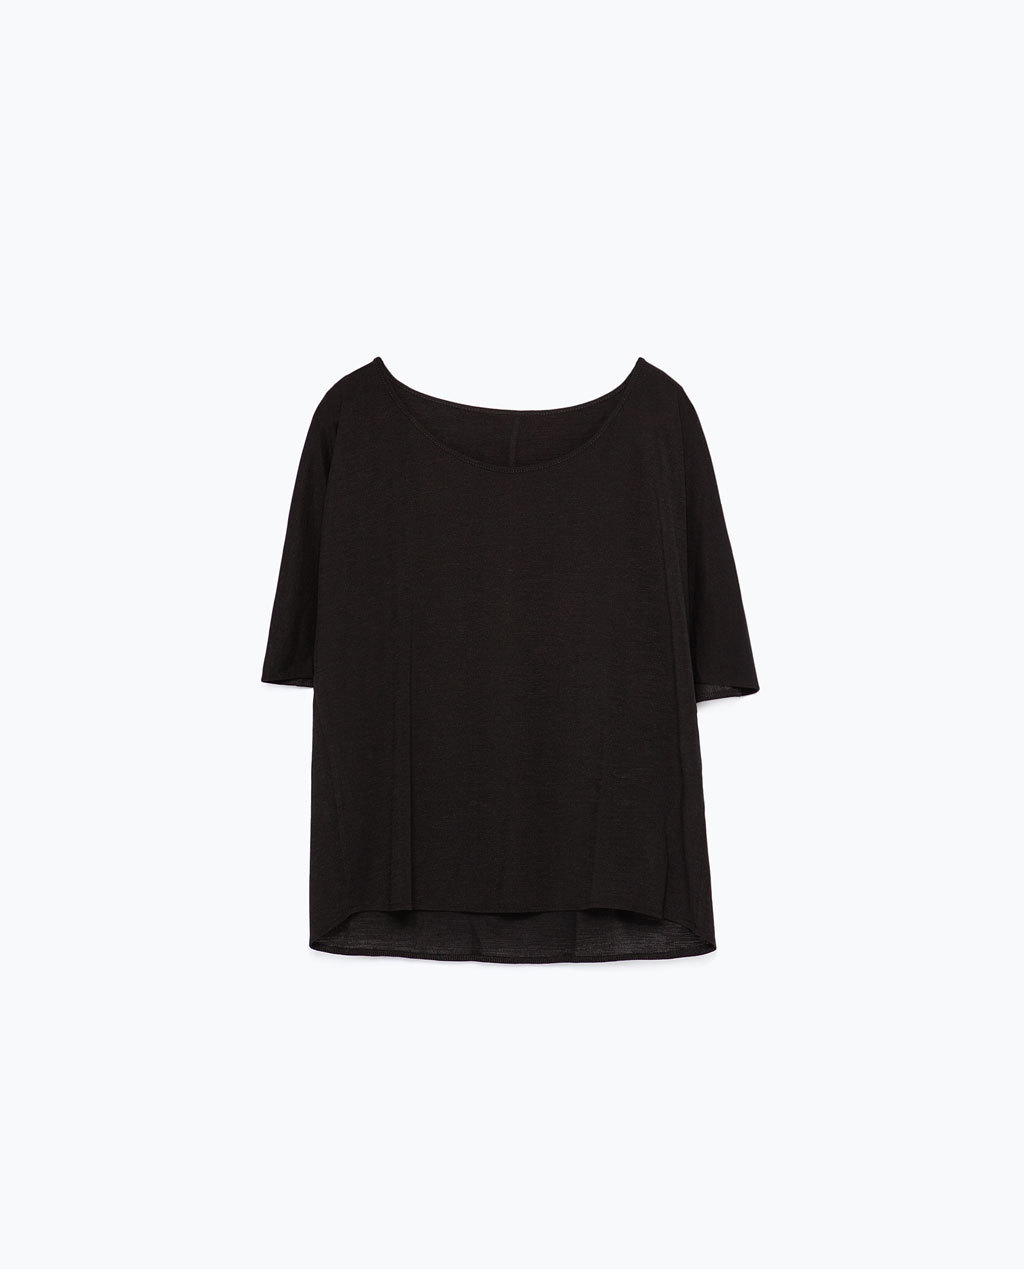 Double Layer T Shirt - neckline: round neck; sleeve style: angel/waterfall; pattern: plain; style: t-shirt; predominant colour: black; occasions: casual, creative work; length: standard; fibres: polyester/polyamide - stretch; fit: straight cut; sleeve length: half sleeve; texture group: crepes; pattern type: fabric; season: s/s 2015; wardrobe: basic